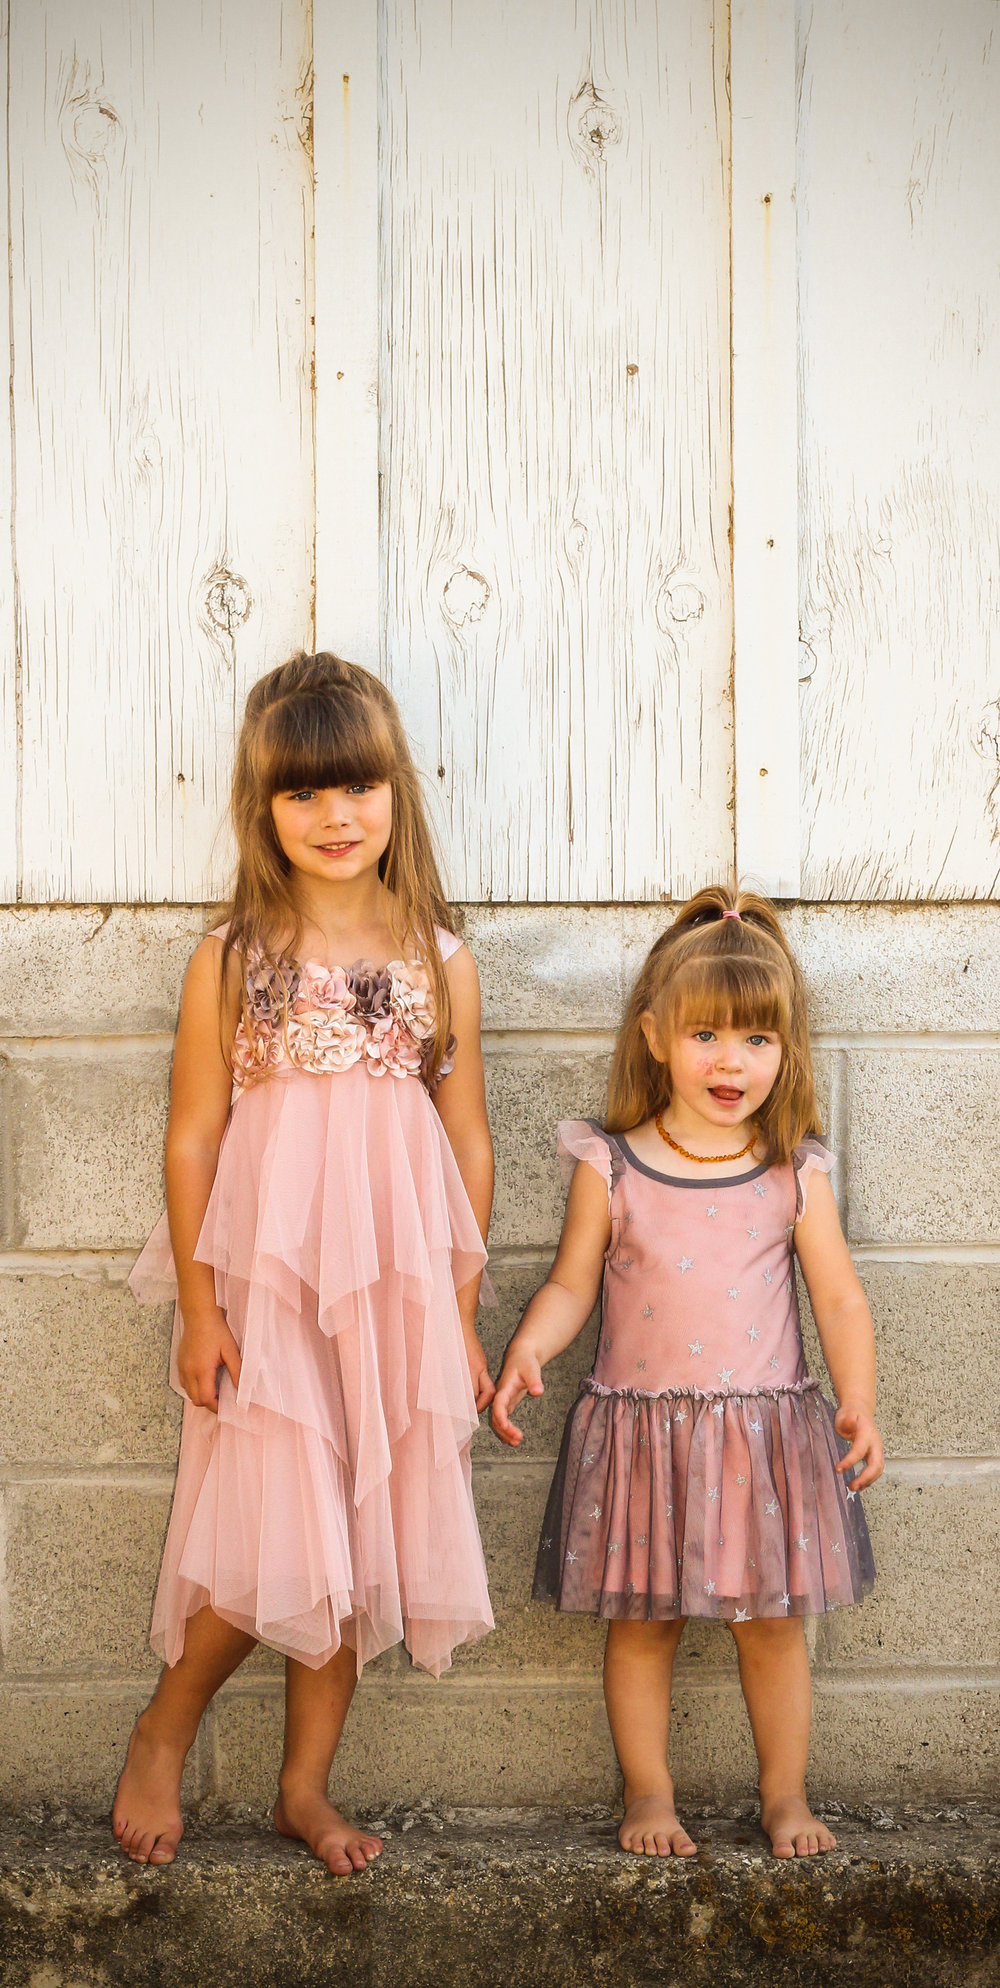 alexandra-rice-photography-quail-hollow-ranch-couple-kids-sisters-portrait.jpg